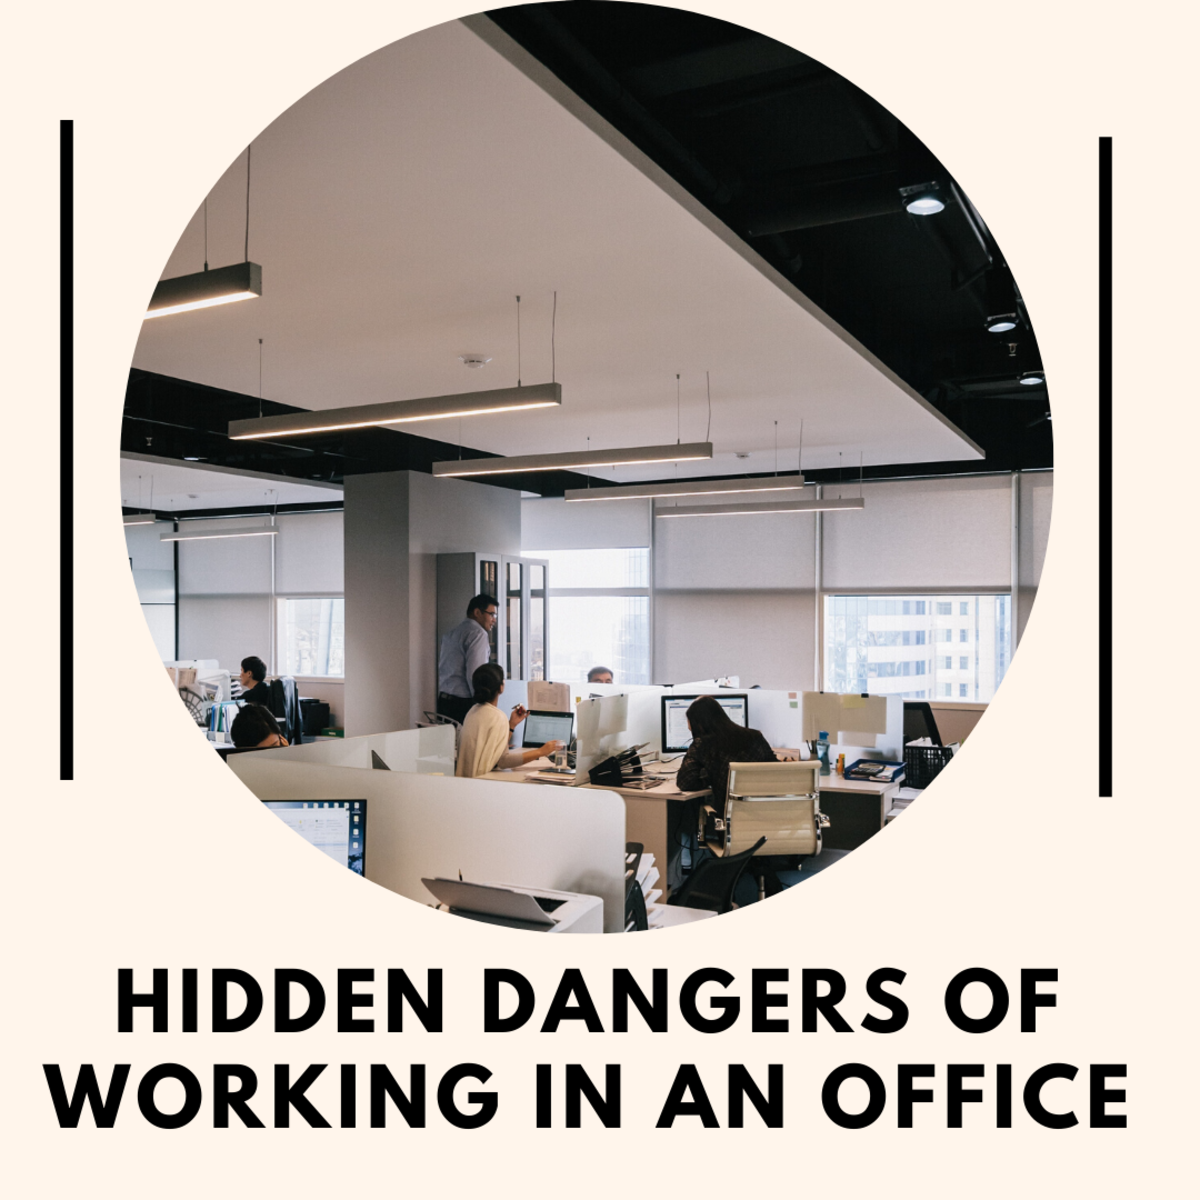 The Hidden Dangers of Working in an Office